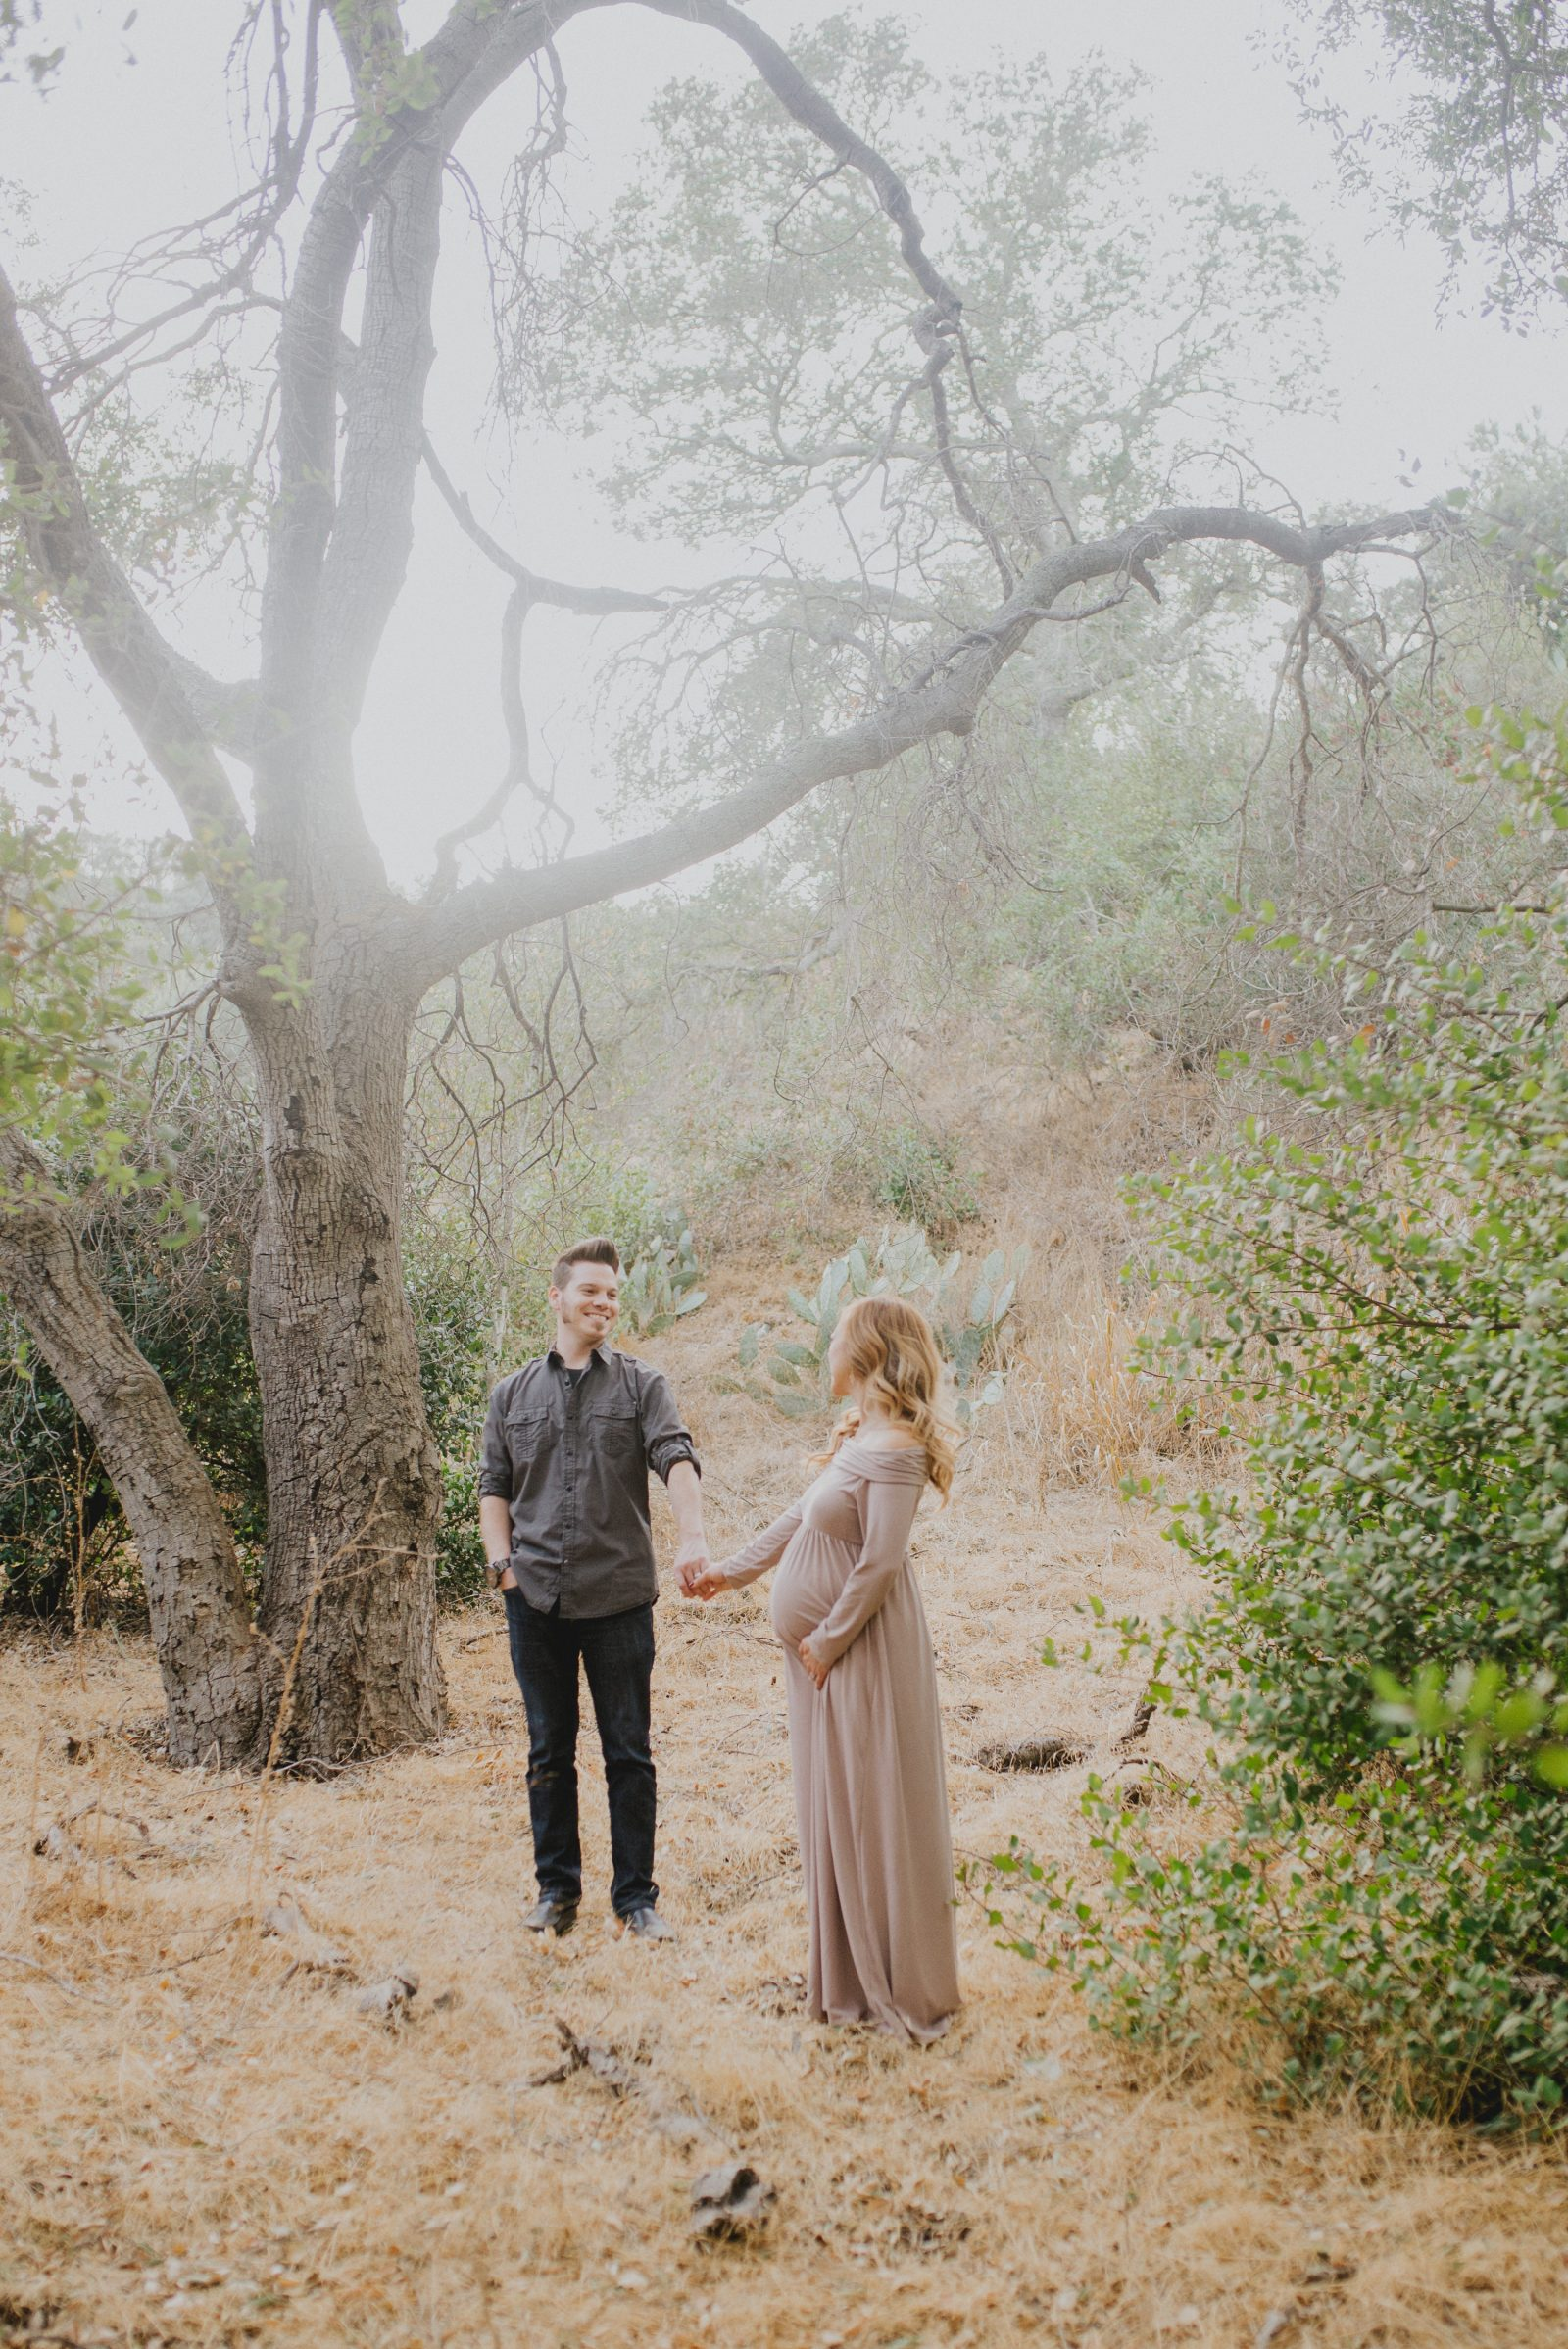 Magical Forest | Orange County Maternity Photographer